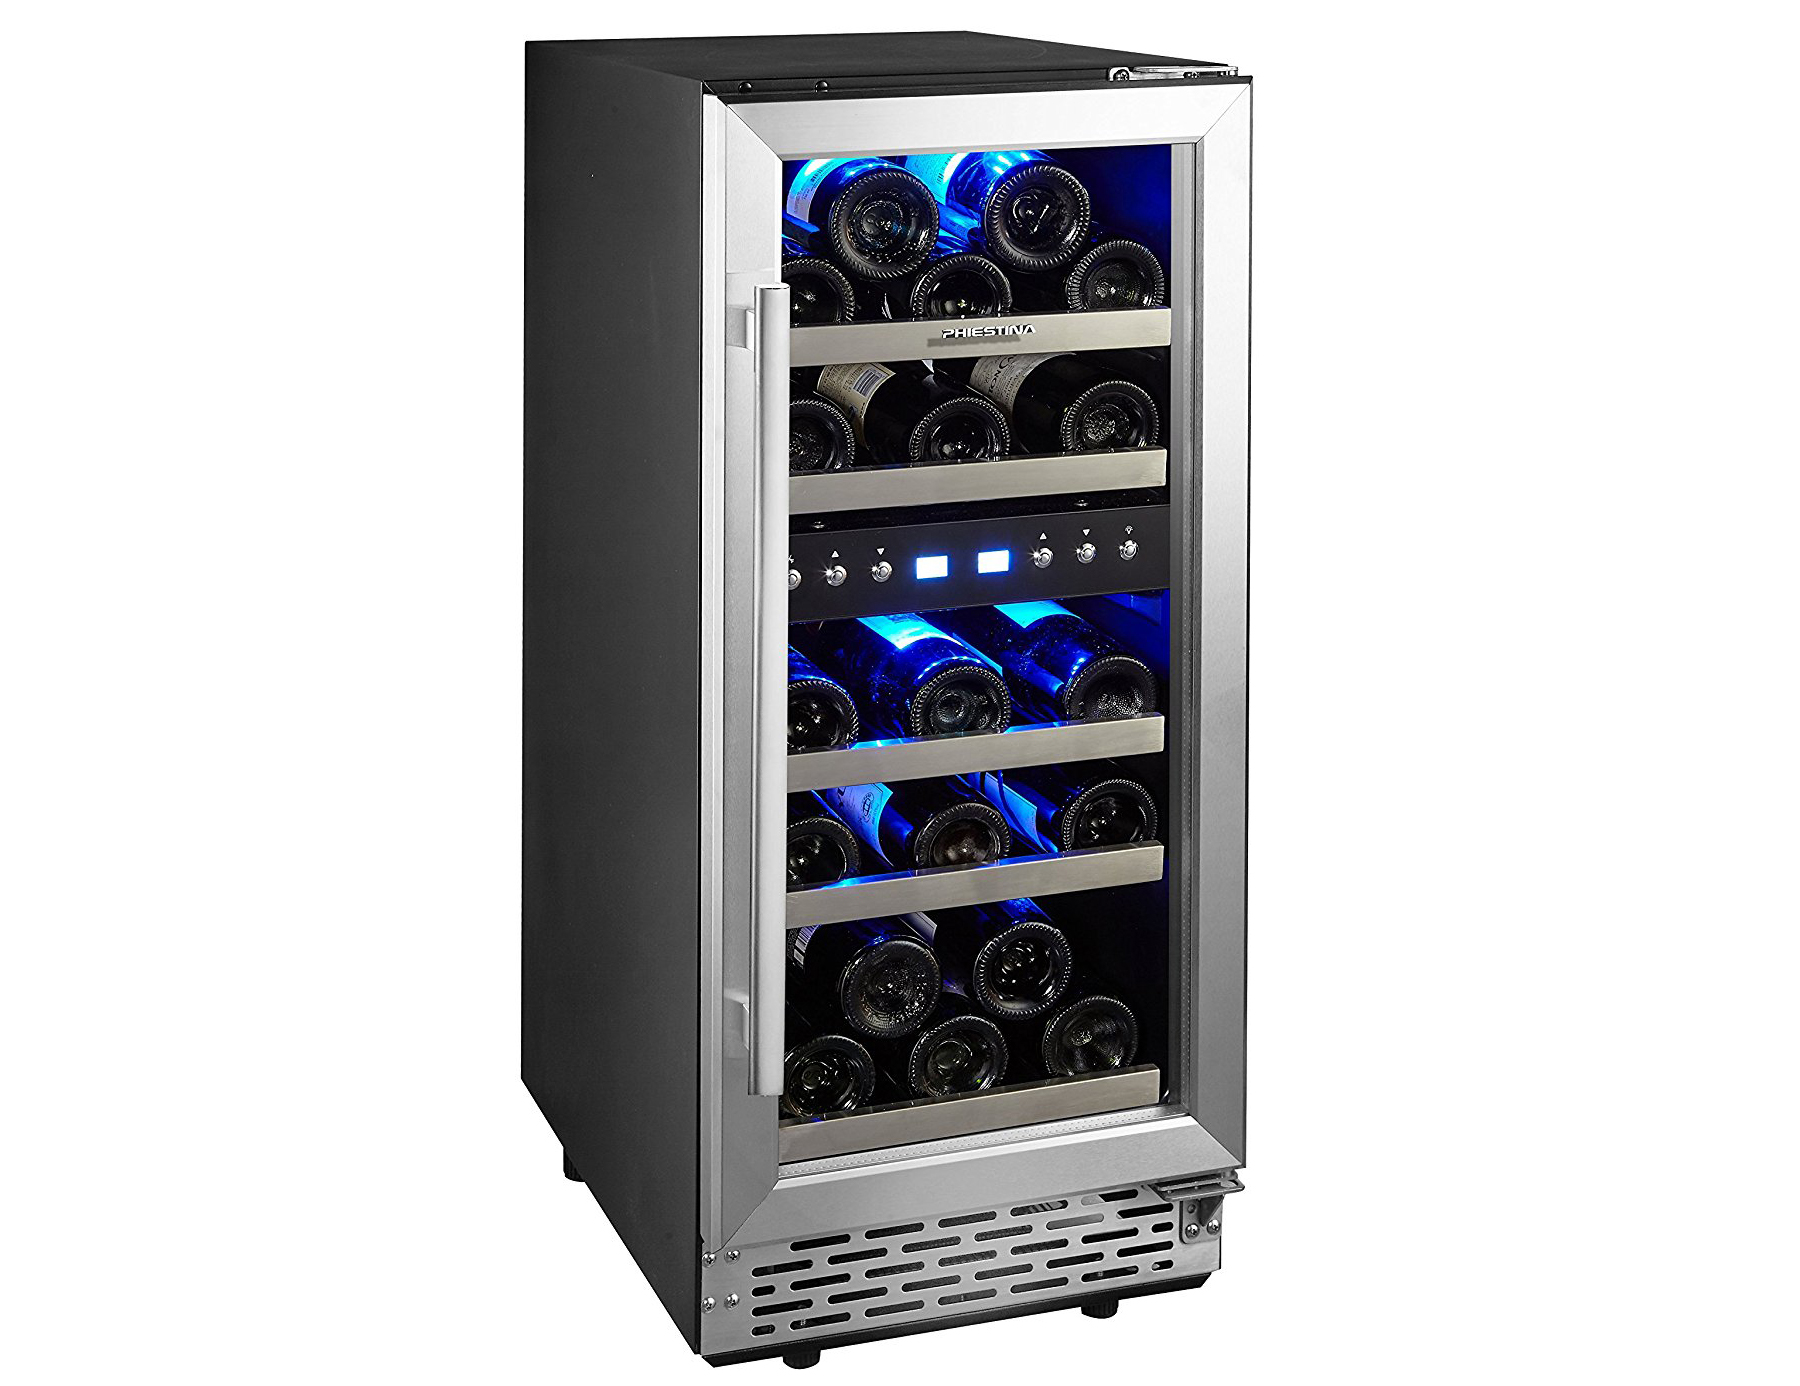 Phiestina 29 Bottle Wine Cooler Review